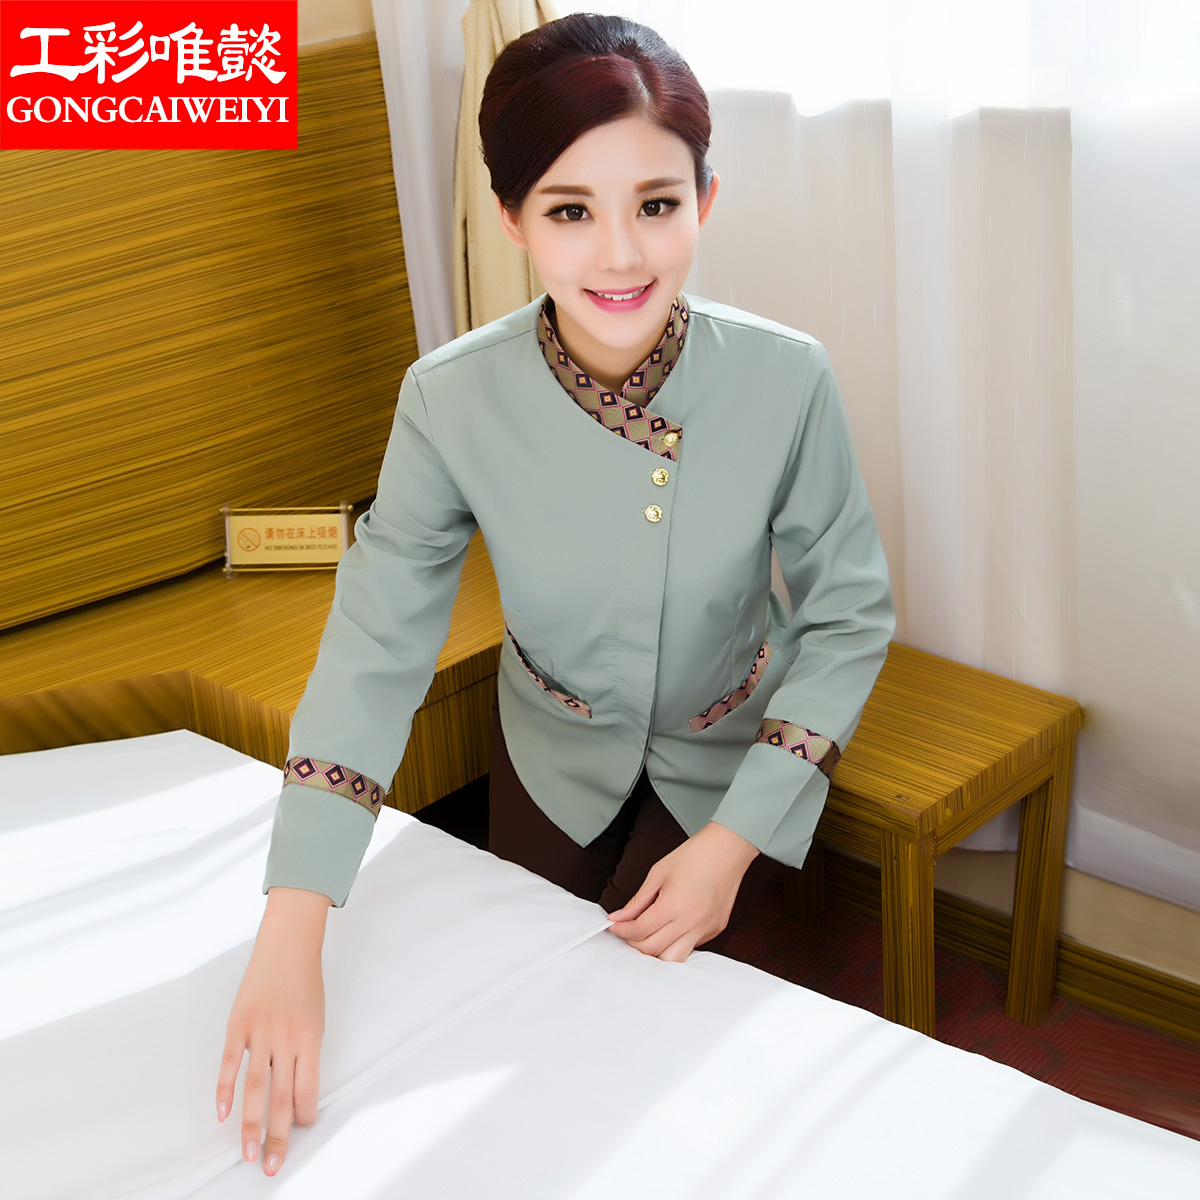 Cleaning clothes long sleeve fall and winter clothes women work clothes hotel room cleaning staff sleeved overalls clean clothes work clothes